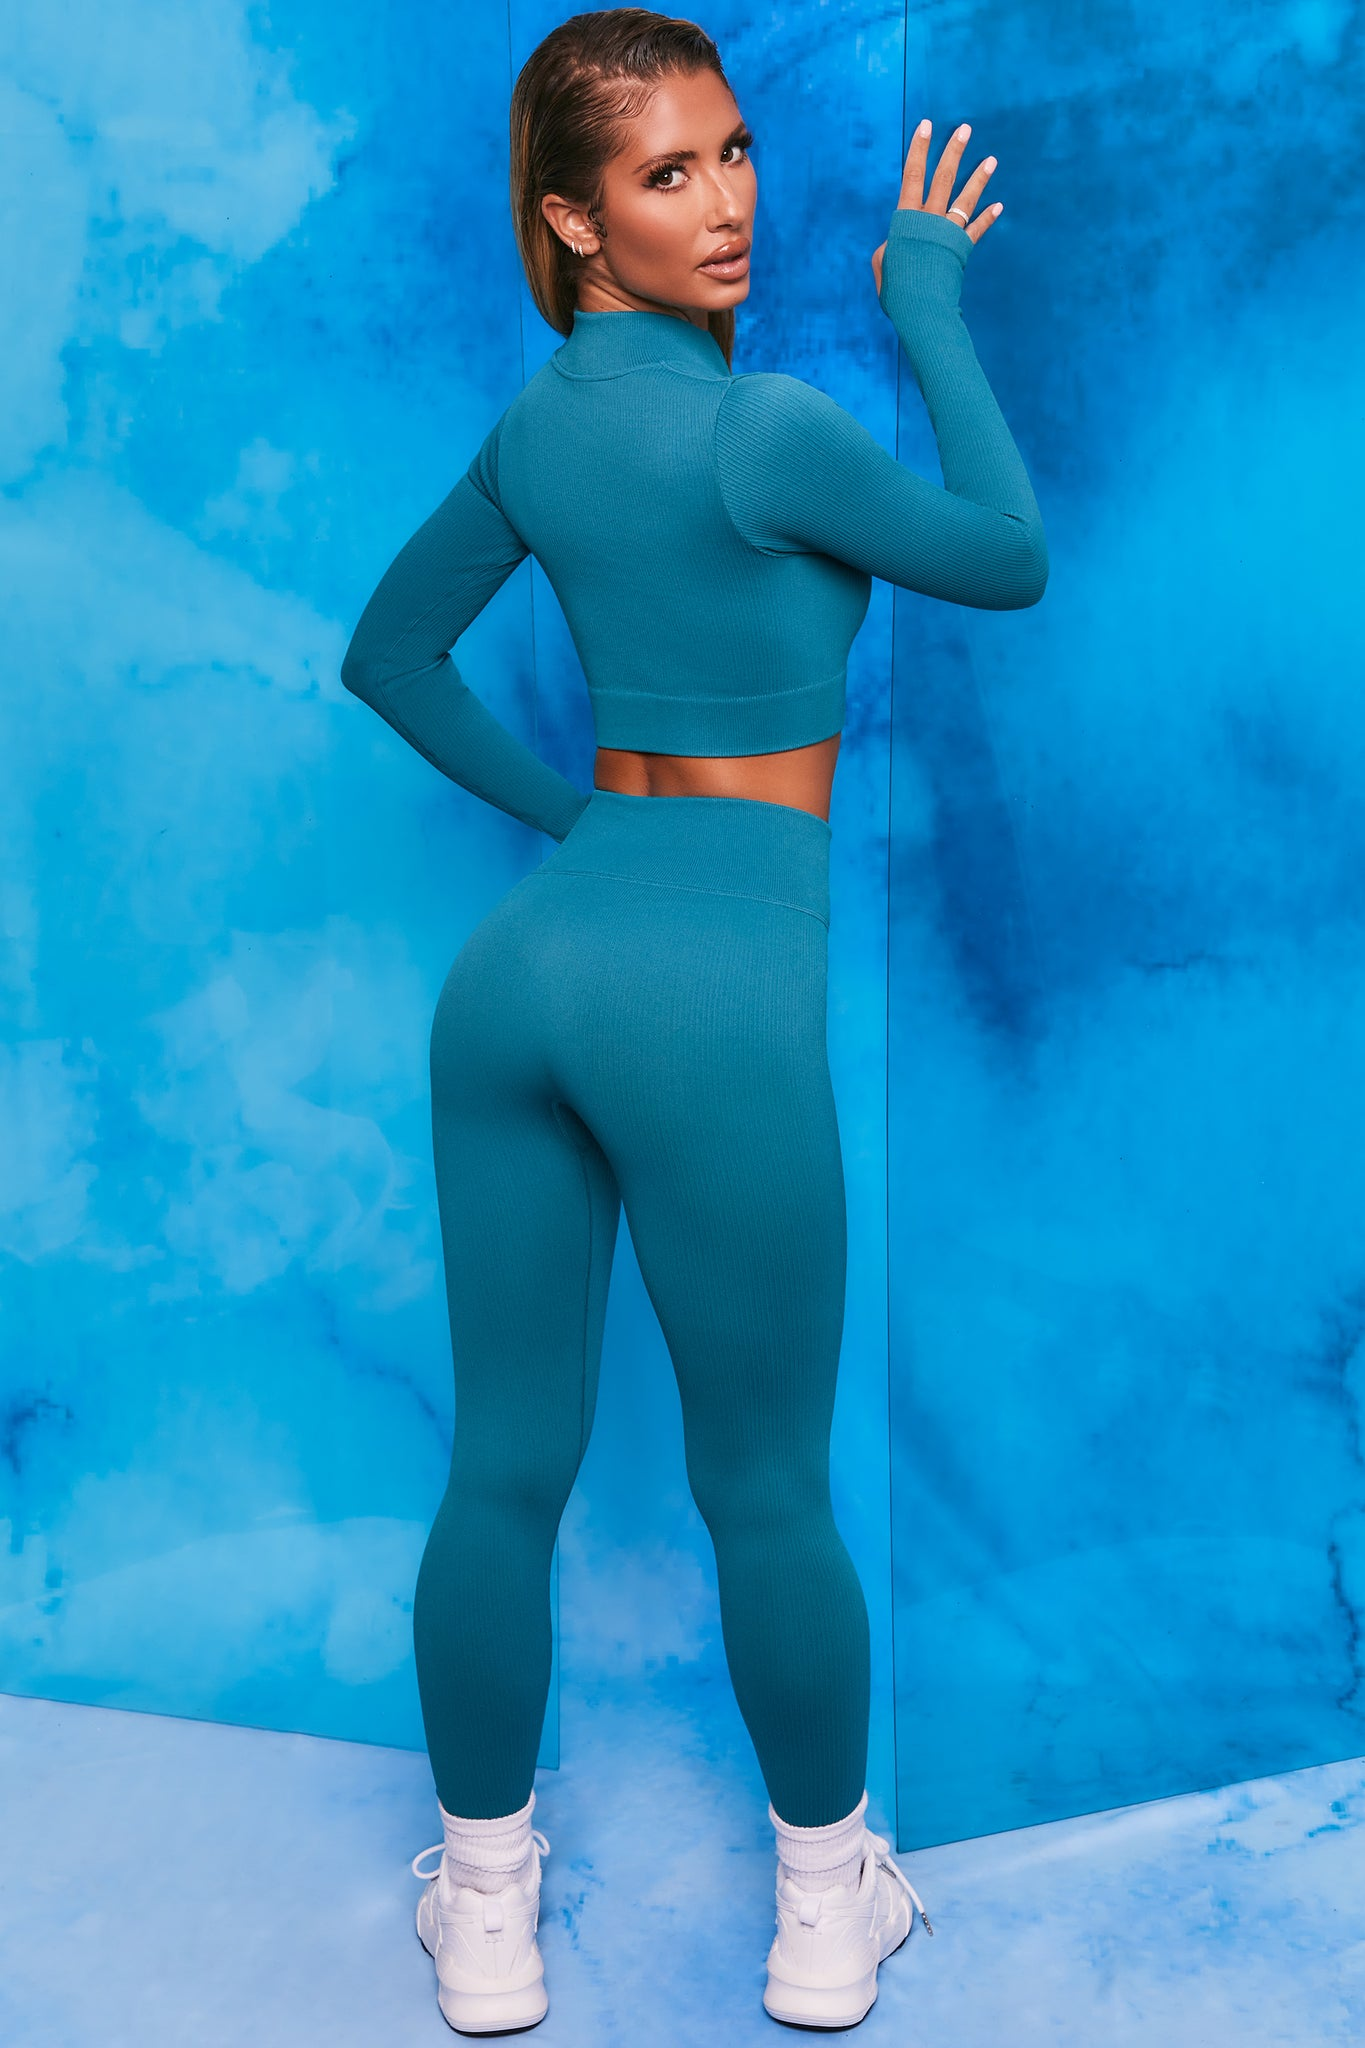 Plain teal ribbed high neck crop top with zip front and long sleeves. Image 3 of 6